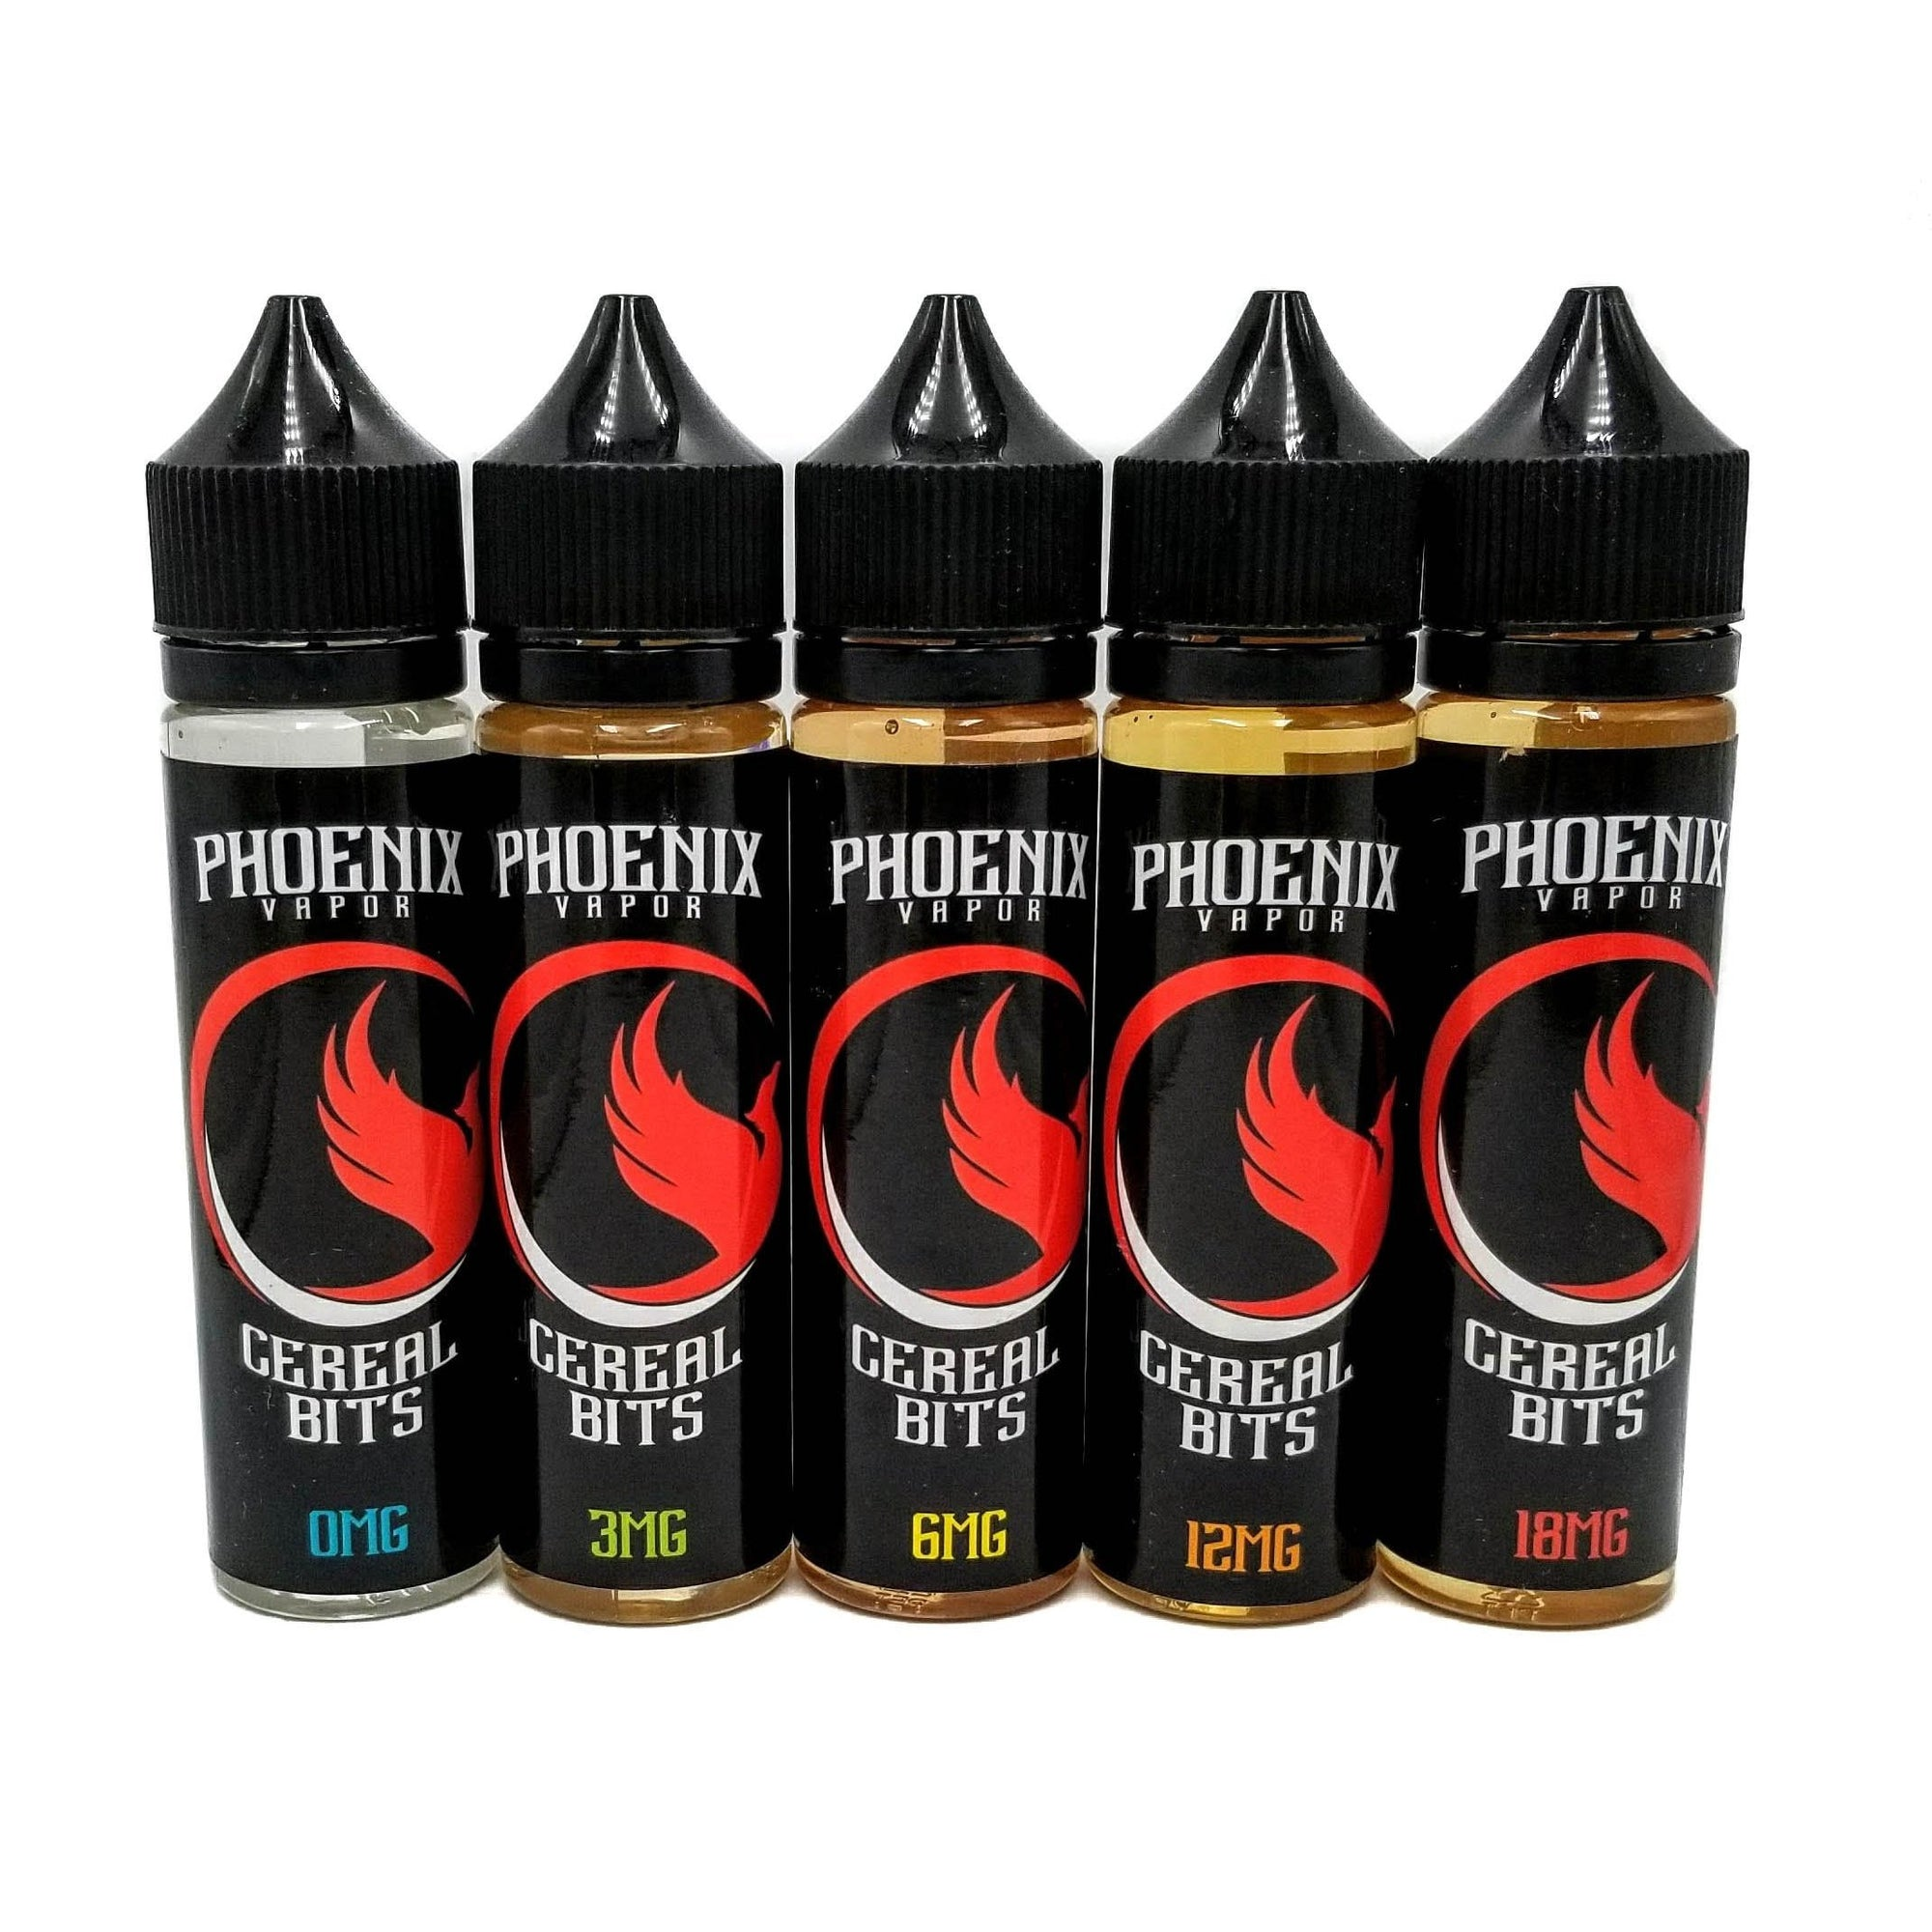 Phoenix Vapor E-Liquid E-Liquid 60 ml / 0 mg Cereal Bits by Phoenix Vapor